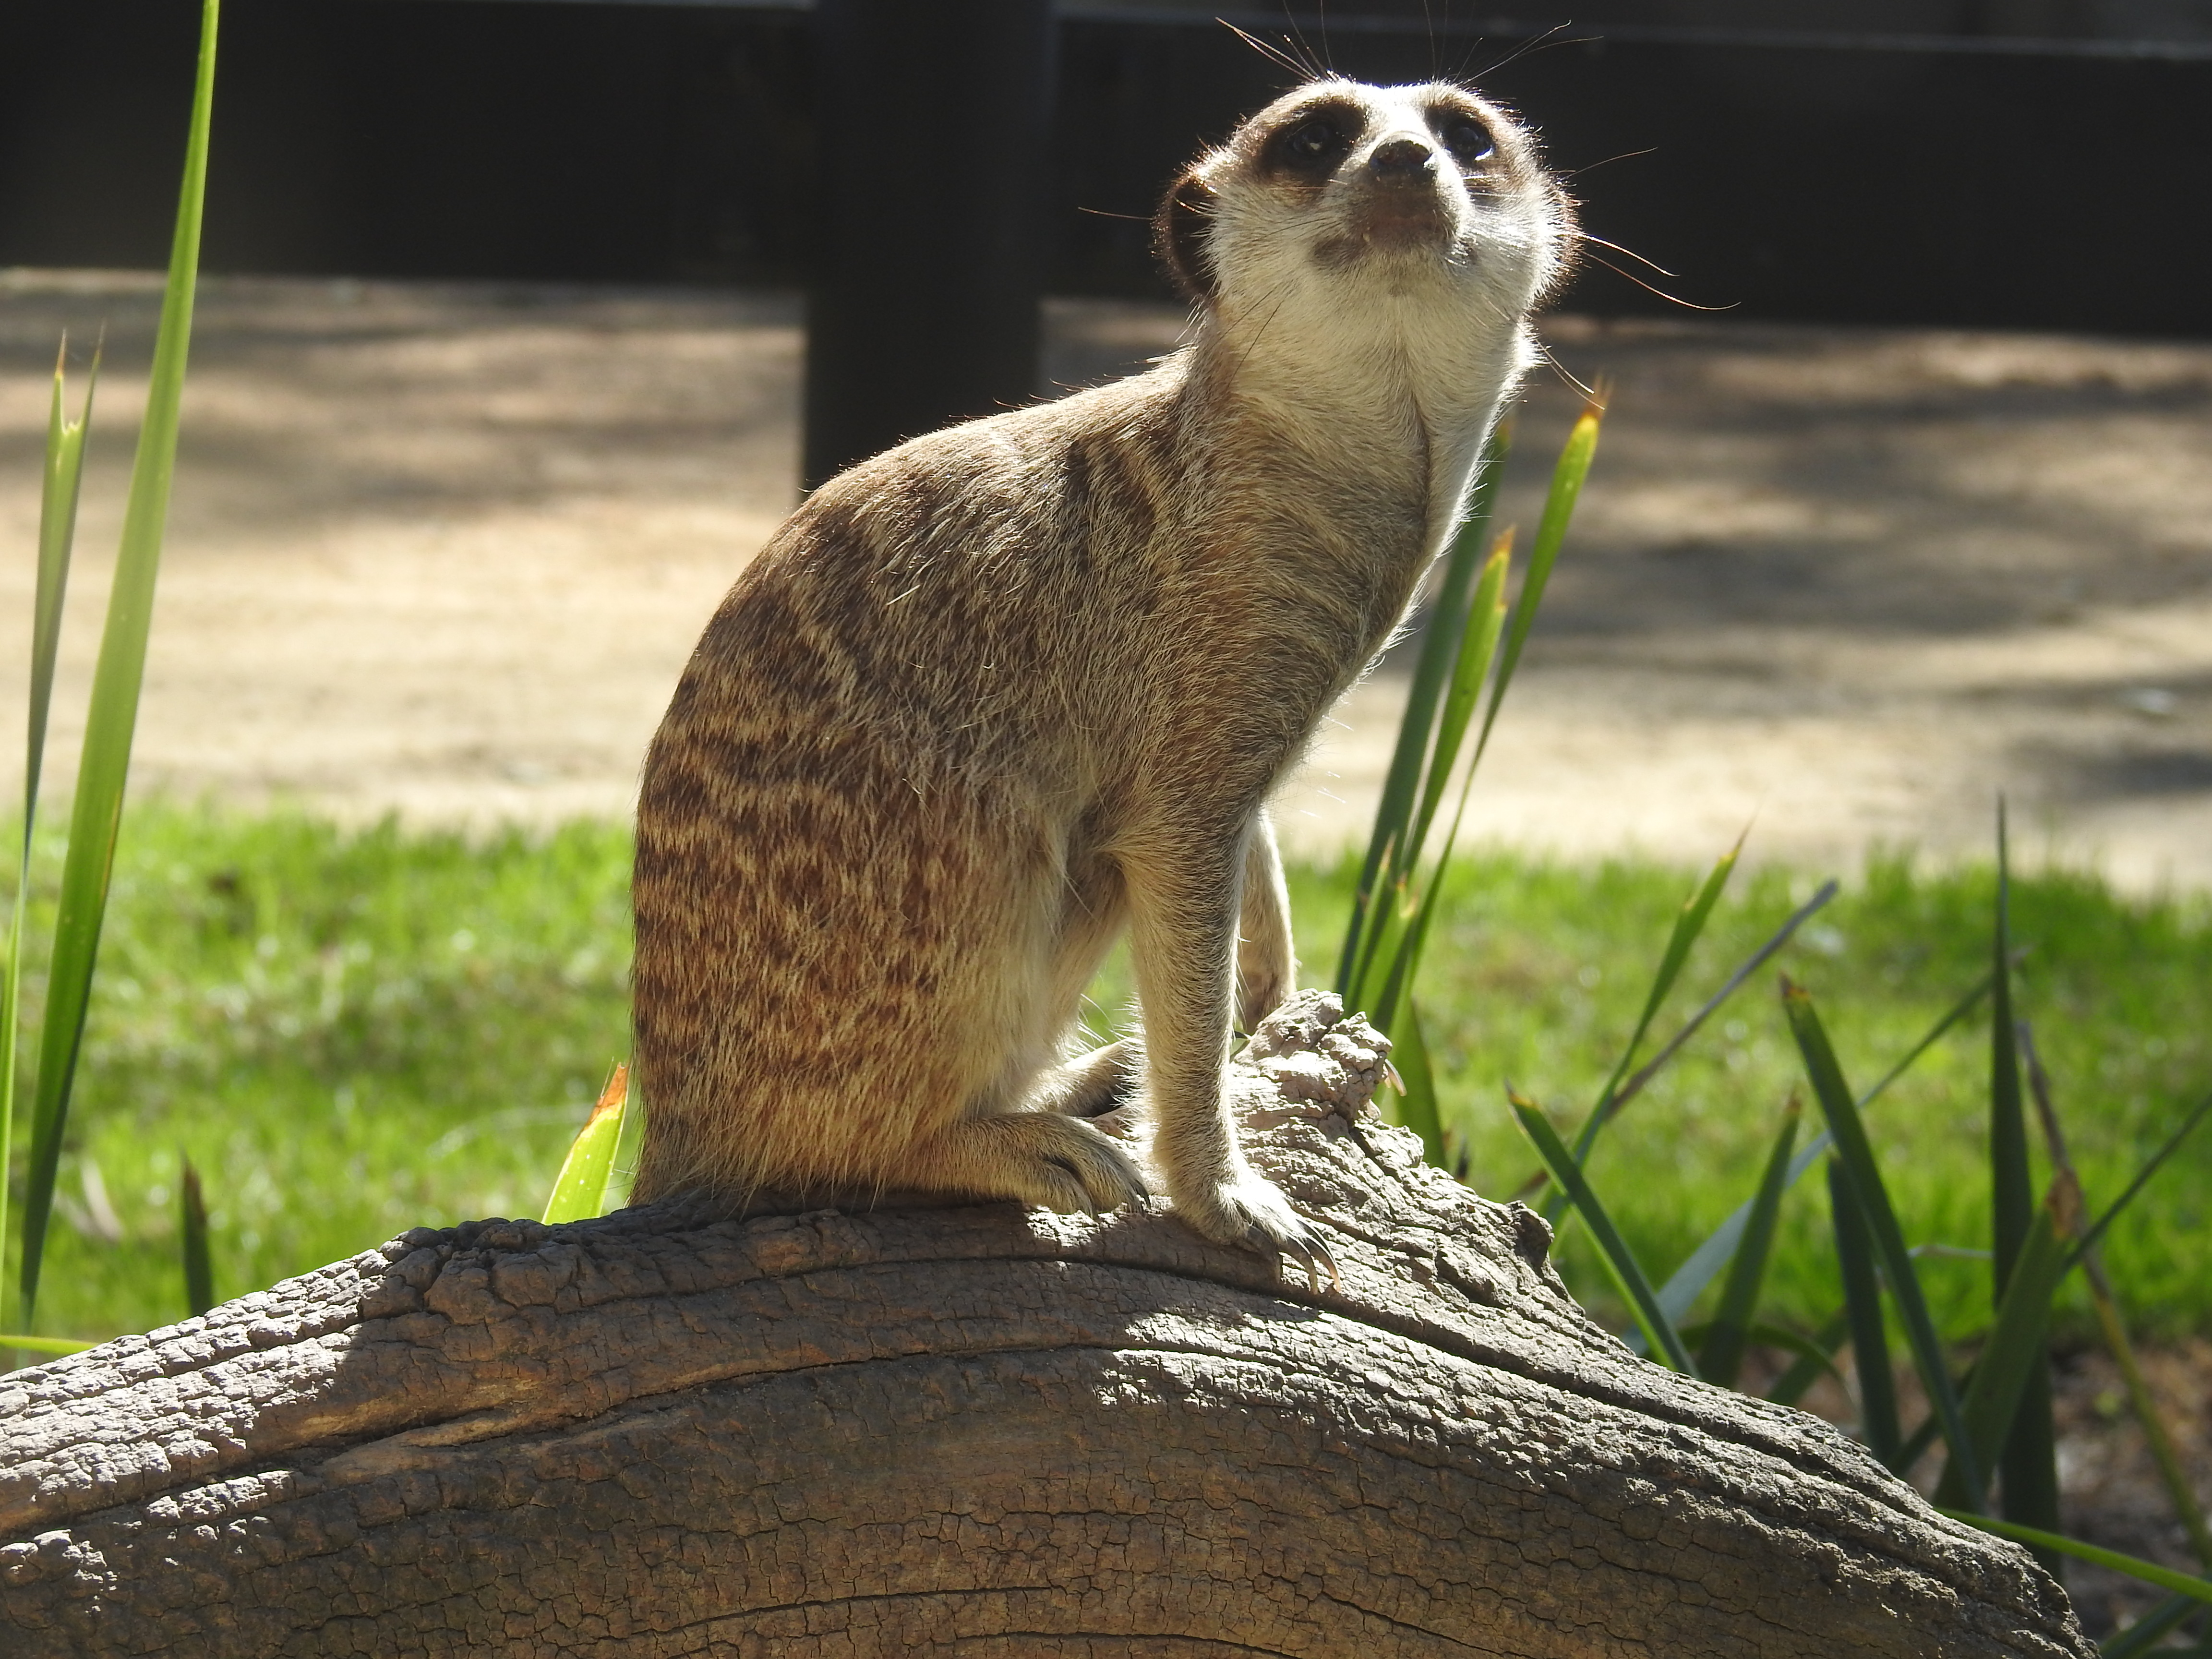 Meerkat - possibly Axel's favourite